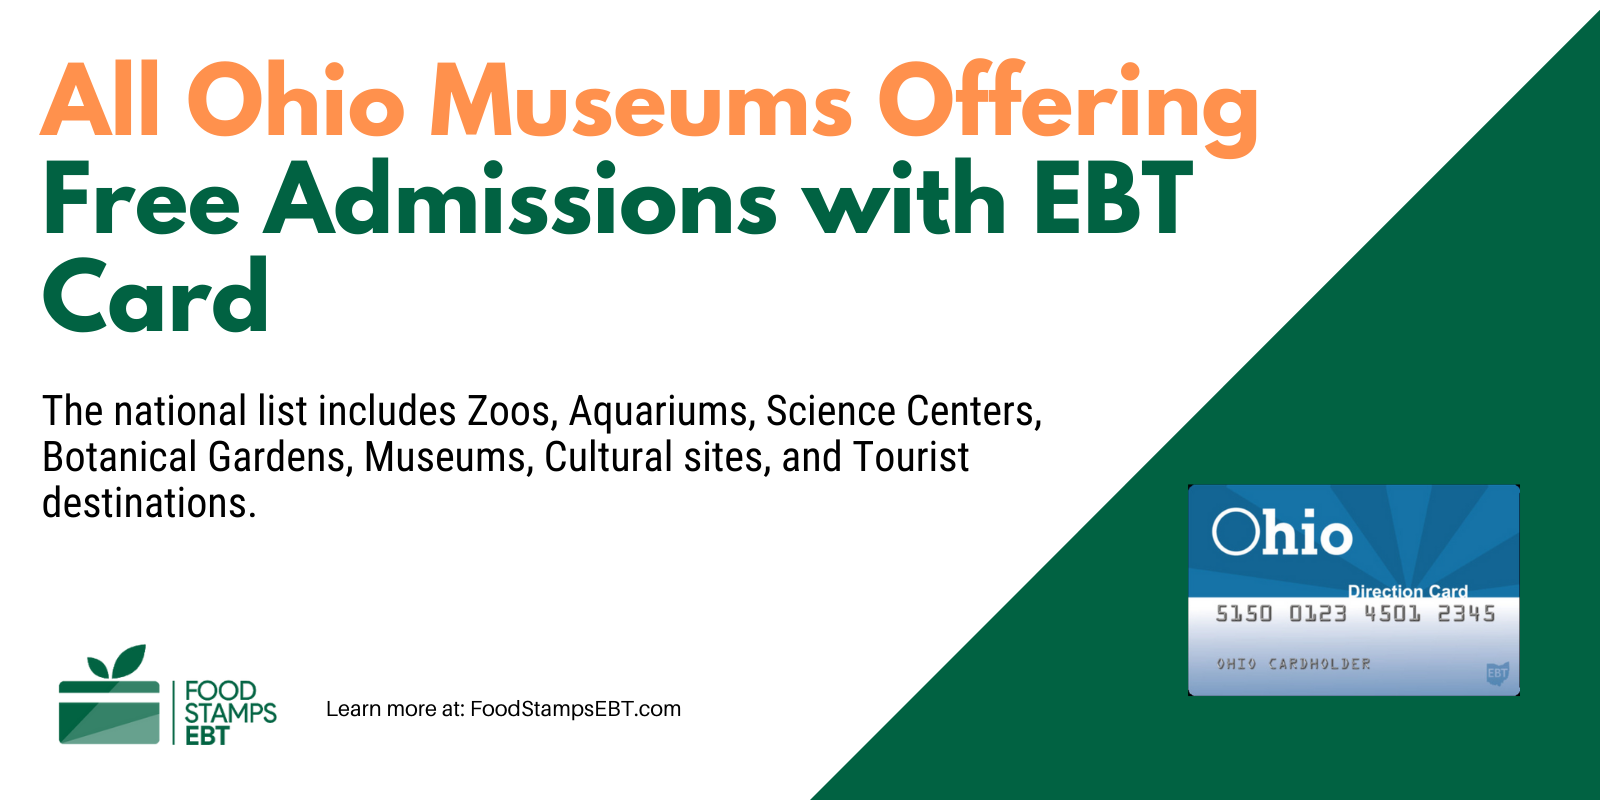 """""""Ohio Museums For Free with EBT Card"""""""